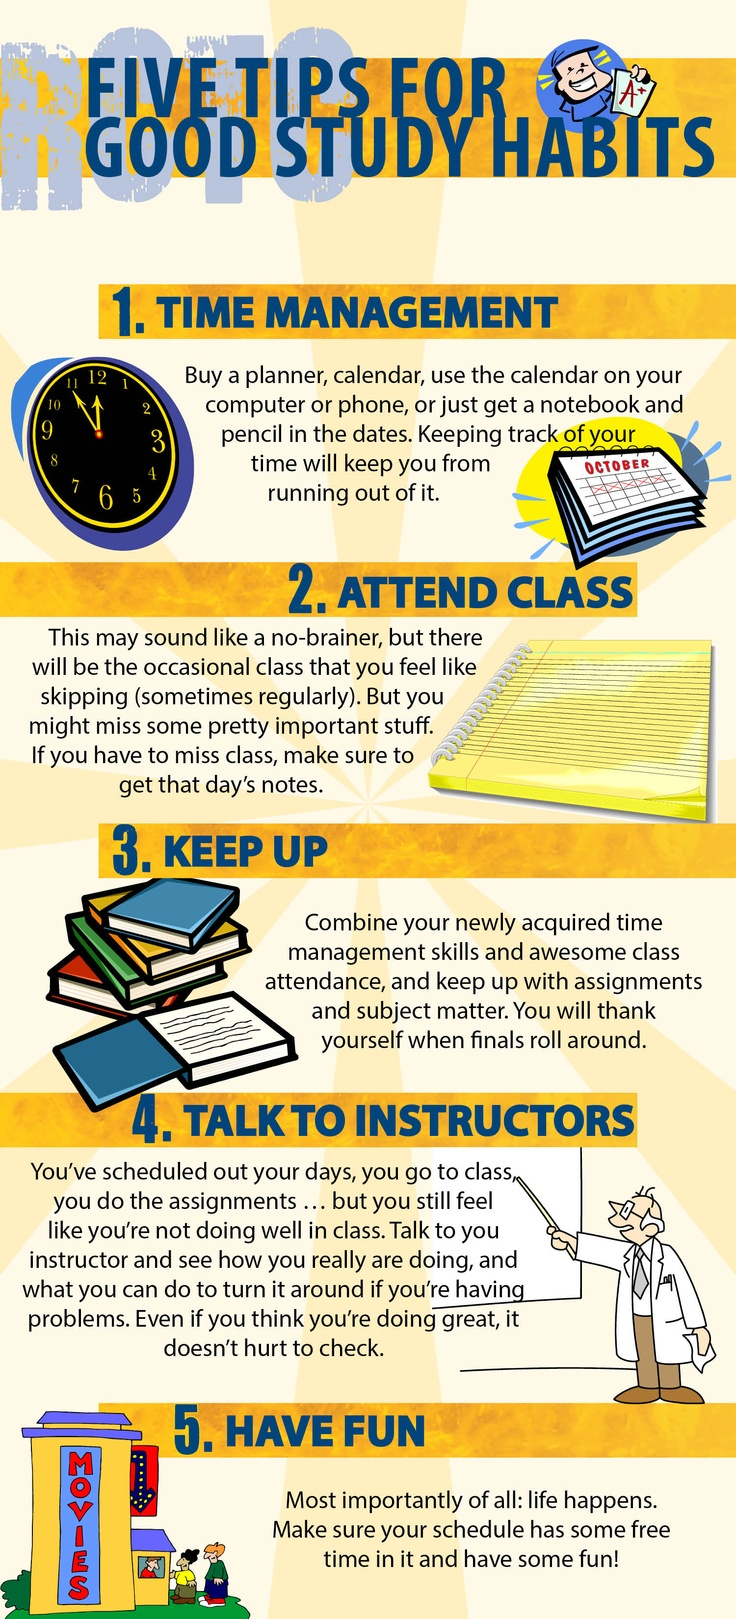 11 Good Study Habits for Students (How to Build a Daily ...